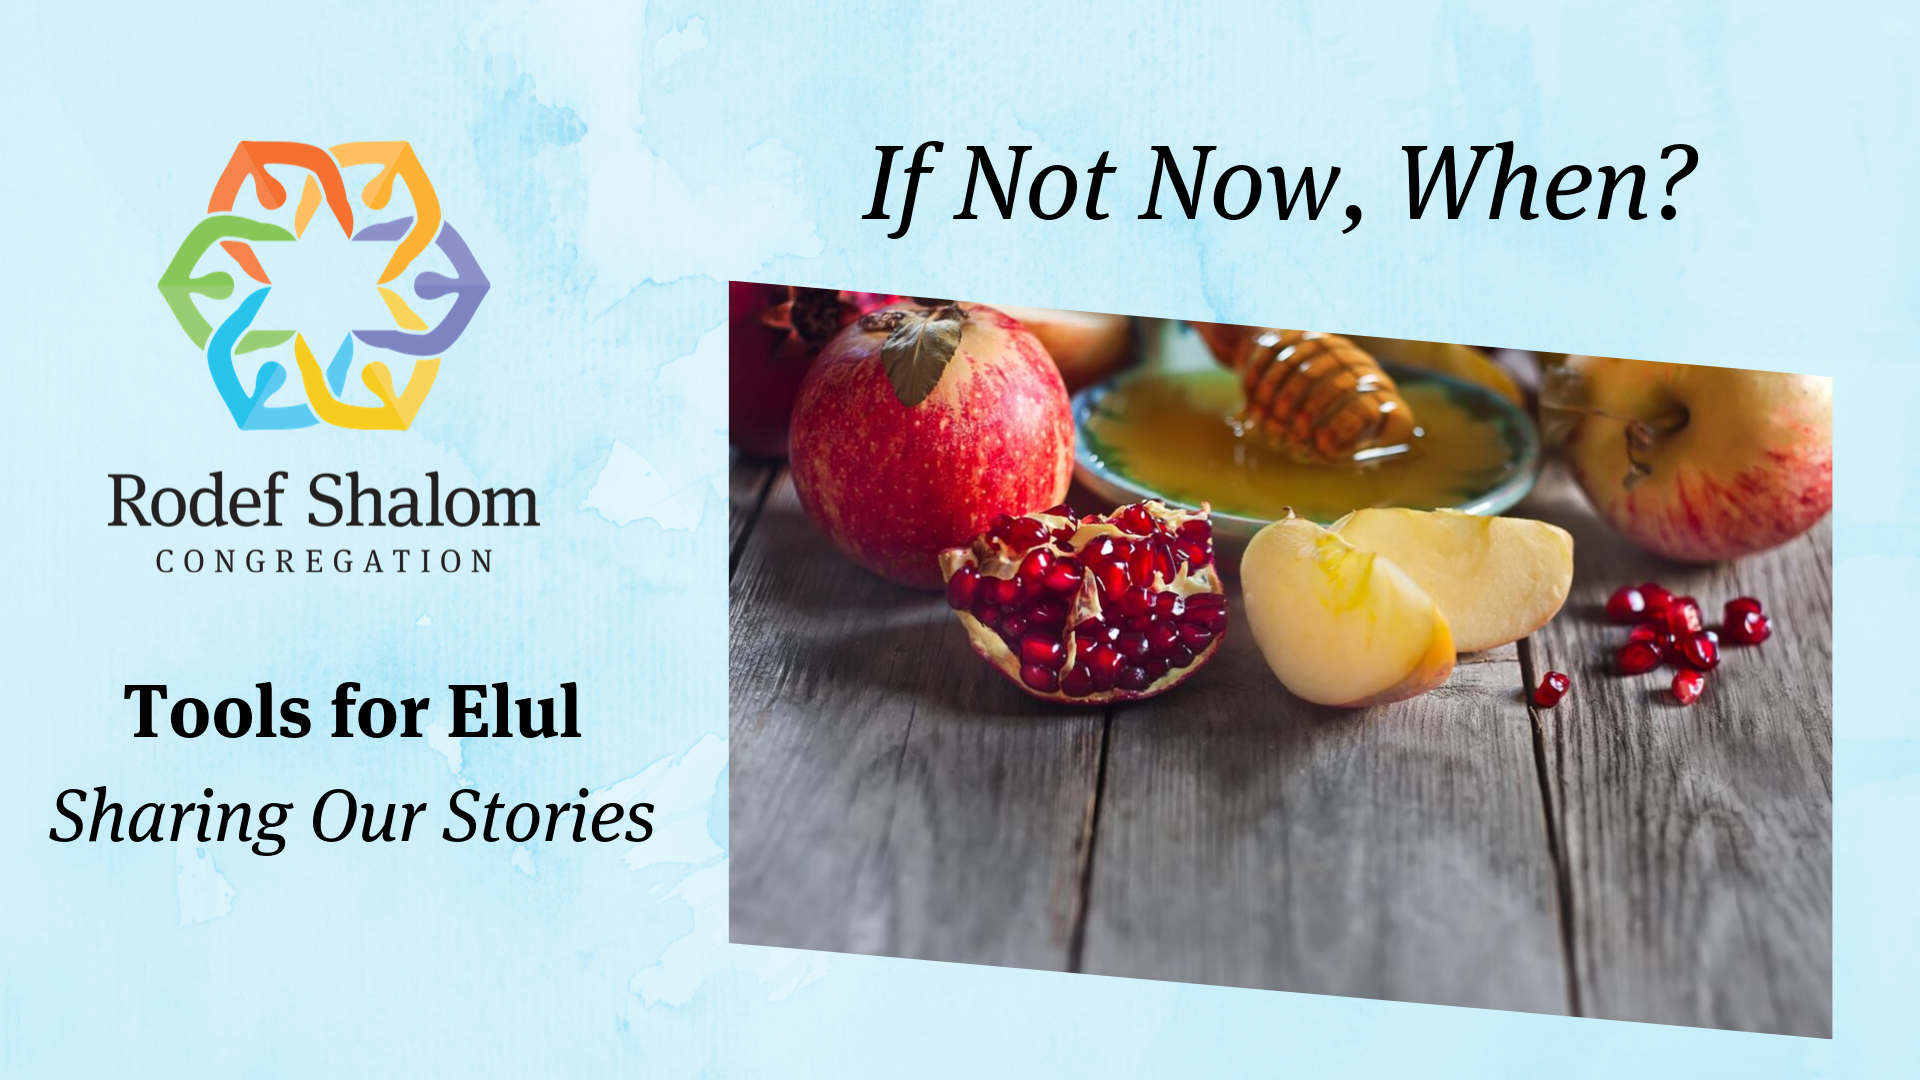 Tools for Elul Headers 8.27.19 (14).png